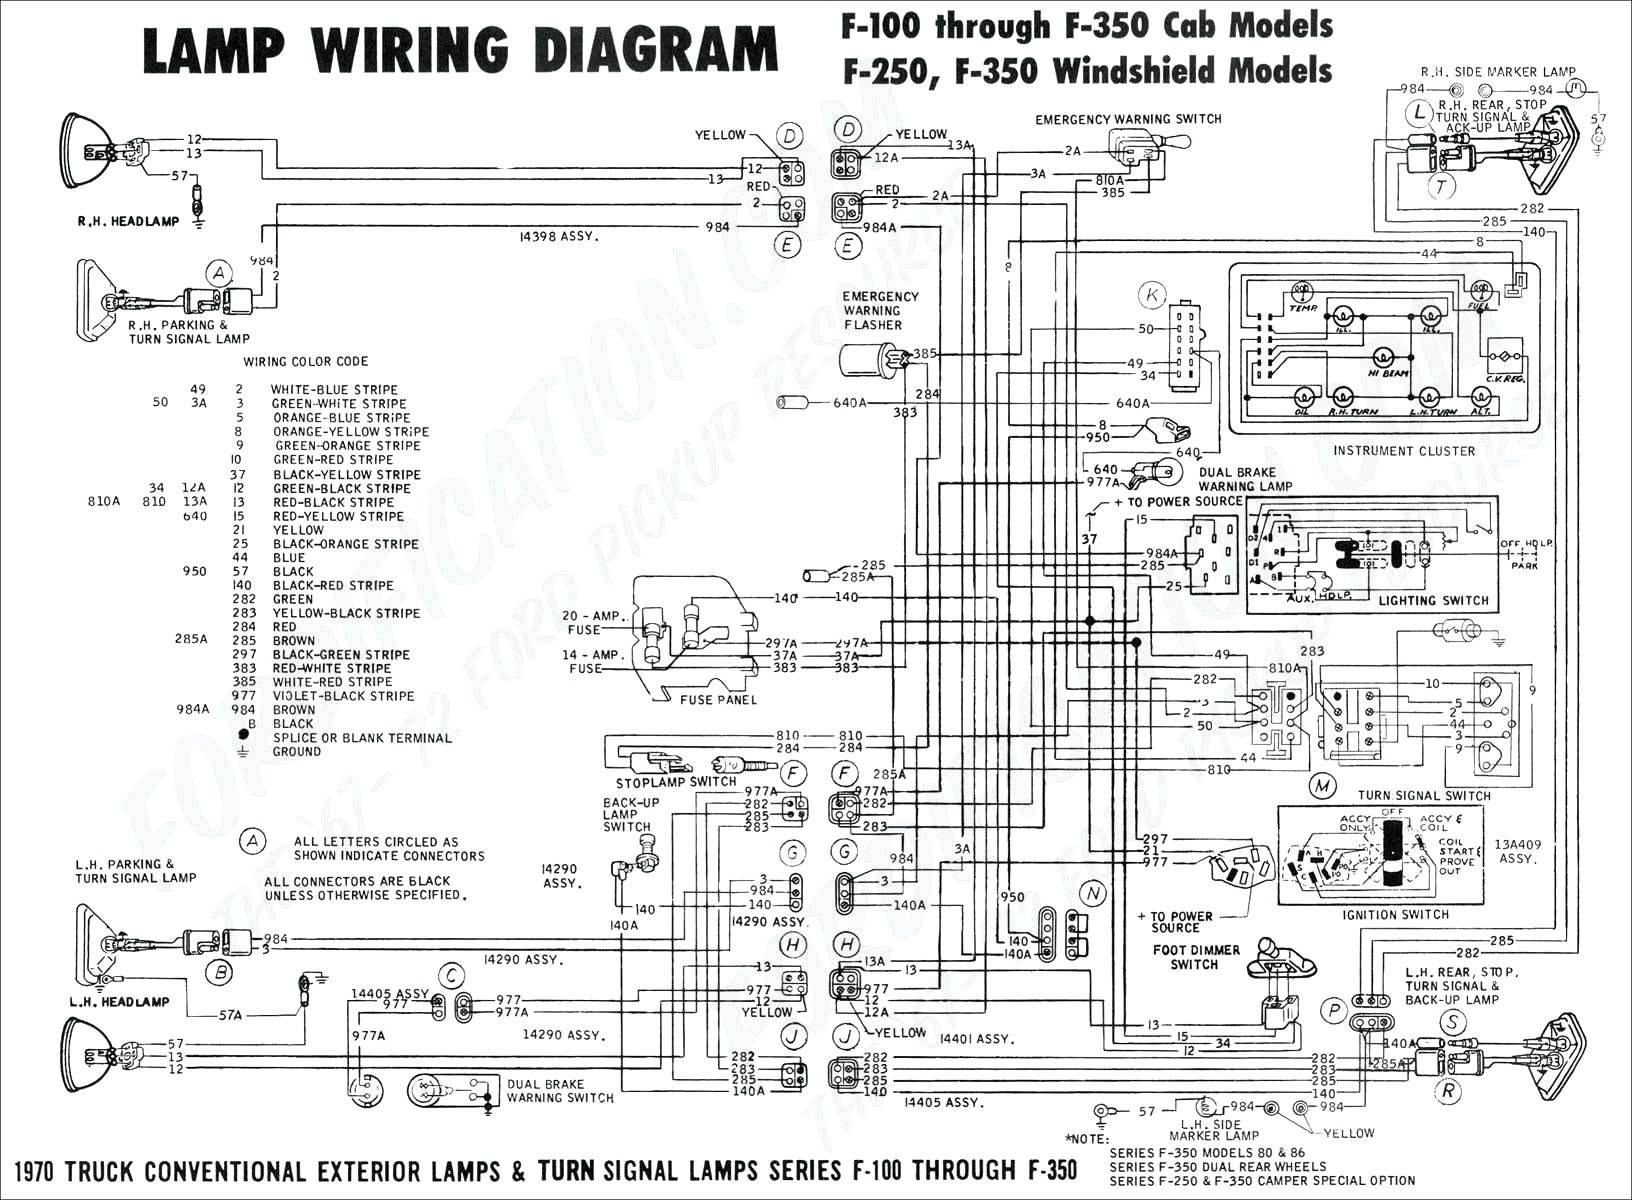 86 chevy wiring diagram free picture schematic br 2457  dump trailer wiring diagram get free image about wiring  br 2457  dump trailer wiring diagram